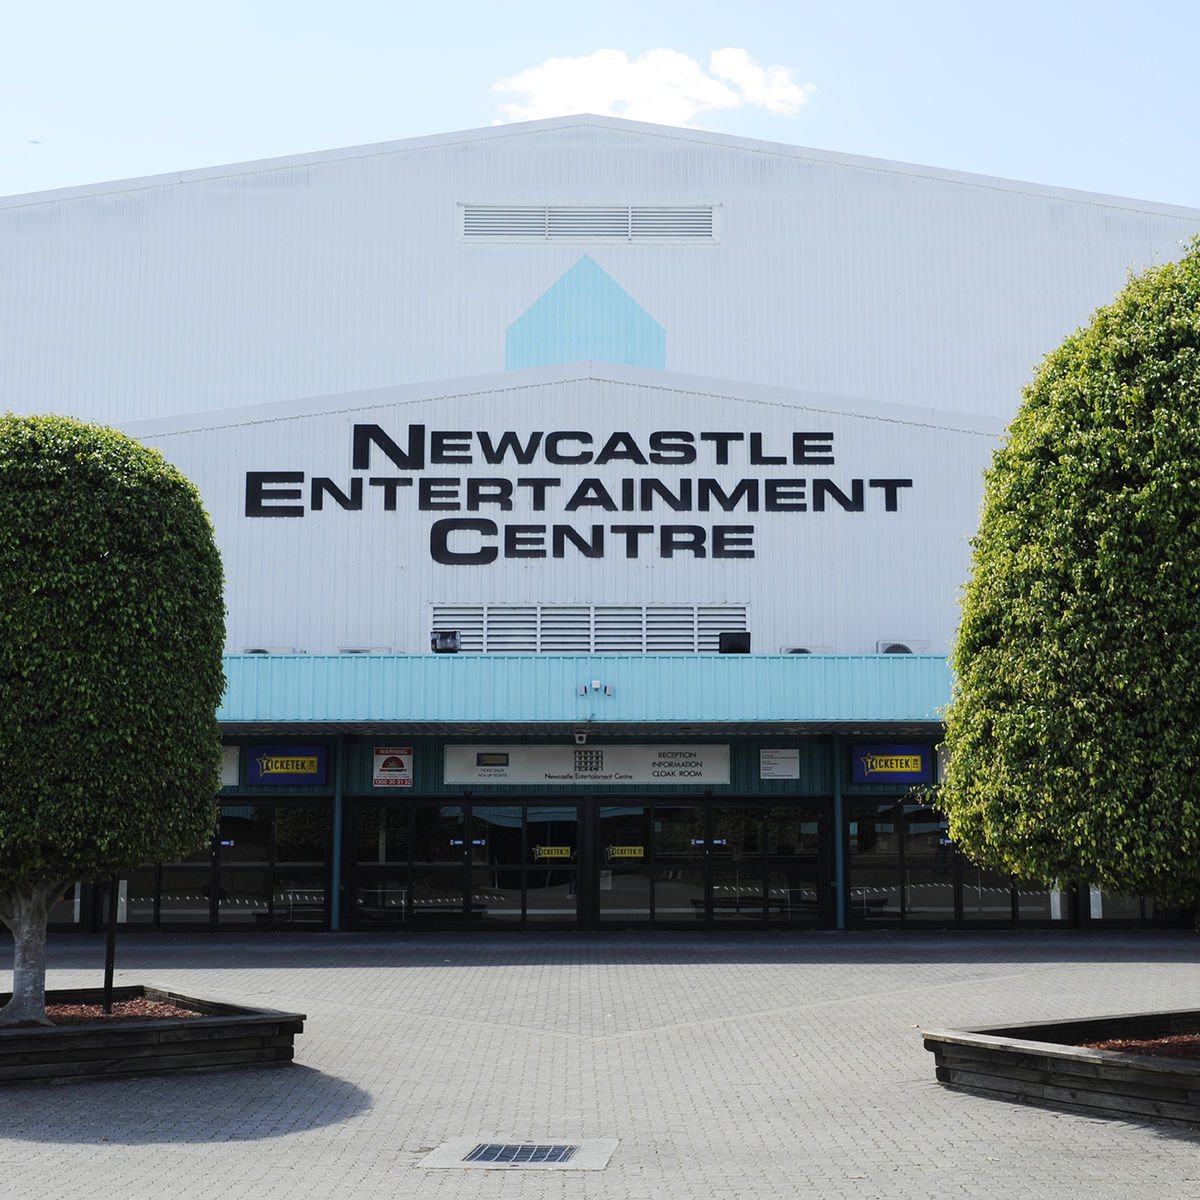 Exterior image of Newcastle Entertainment Centre